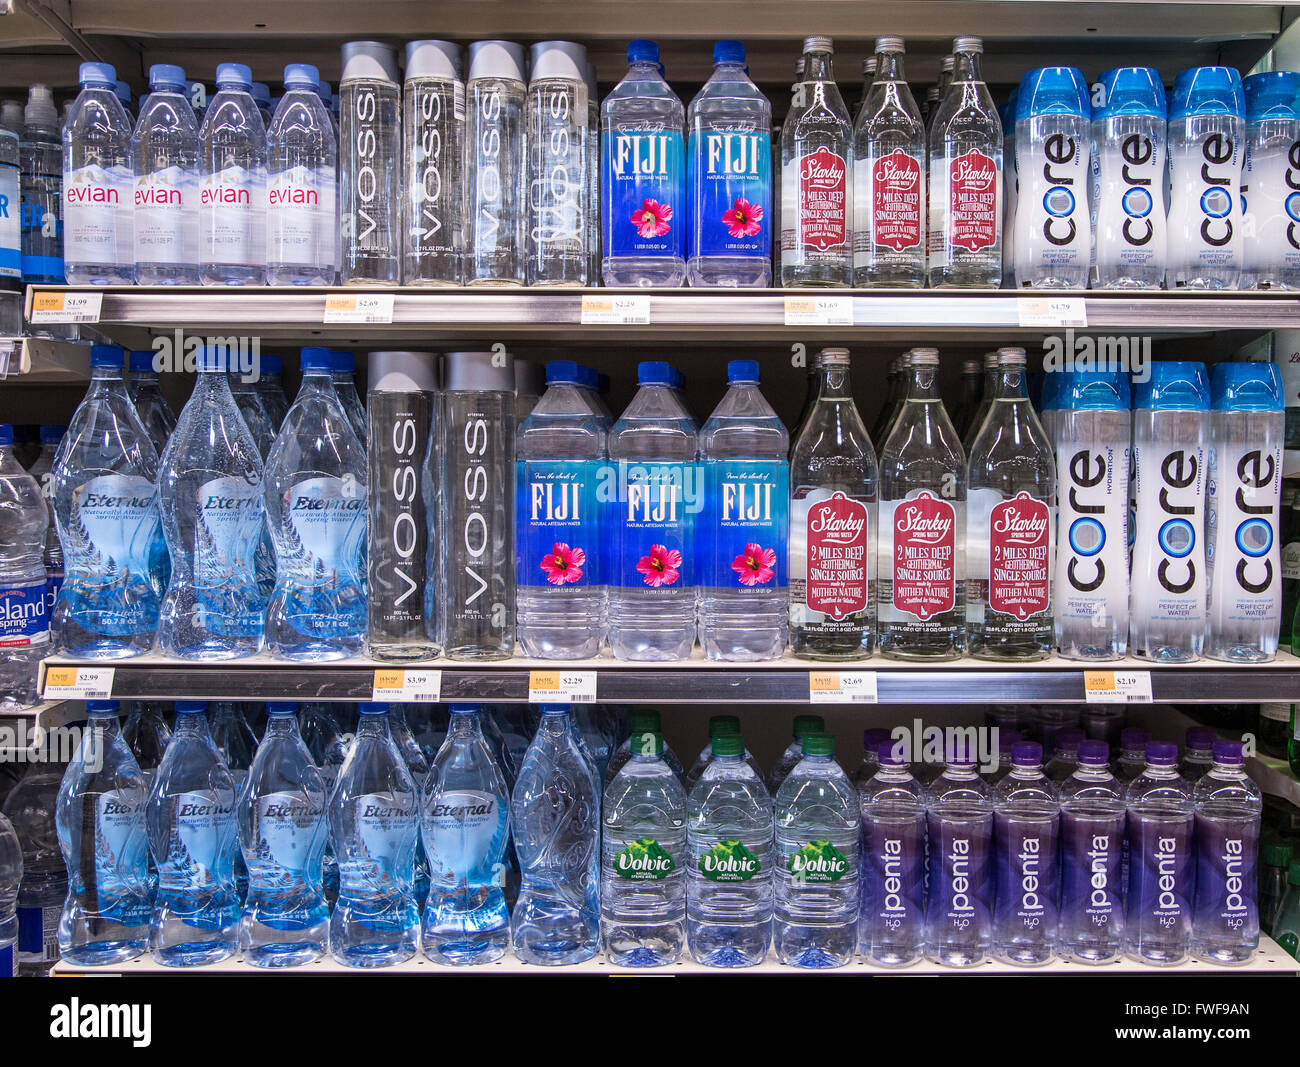 Rows of name brand bottled waters on grocery store shelves. - Stock Image